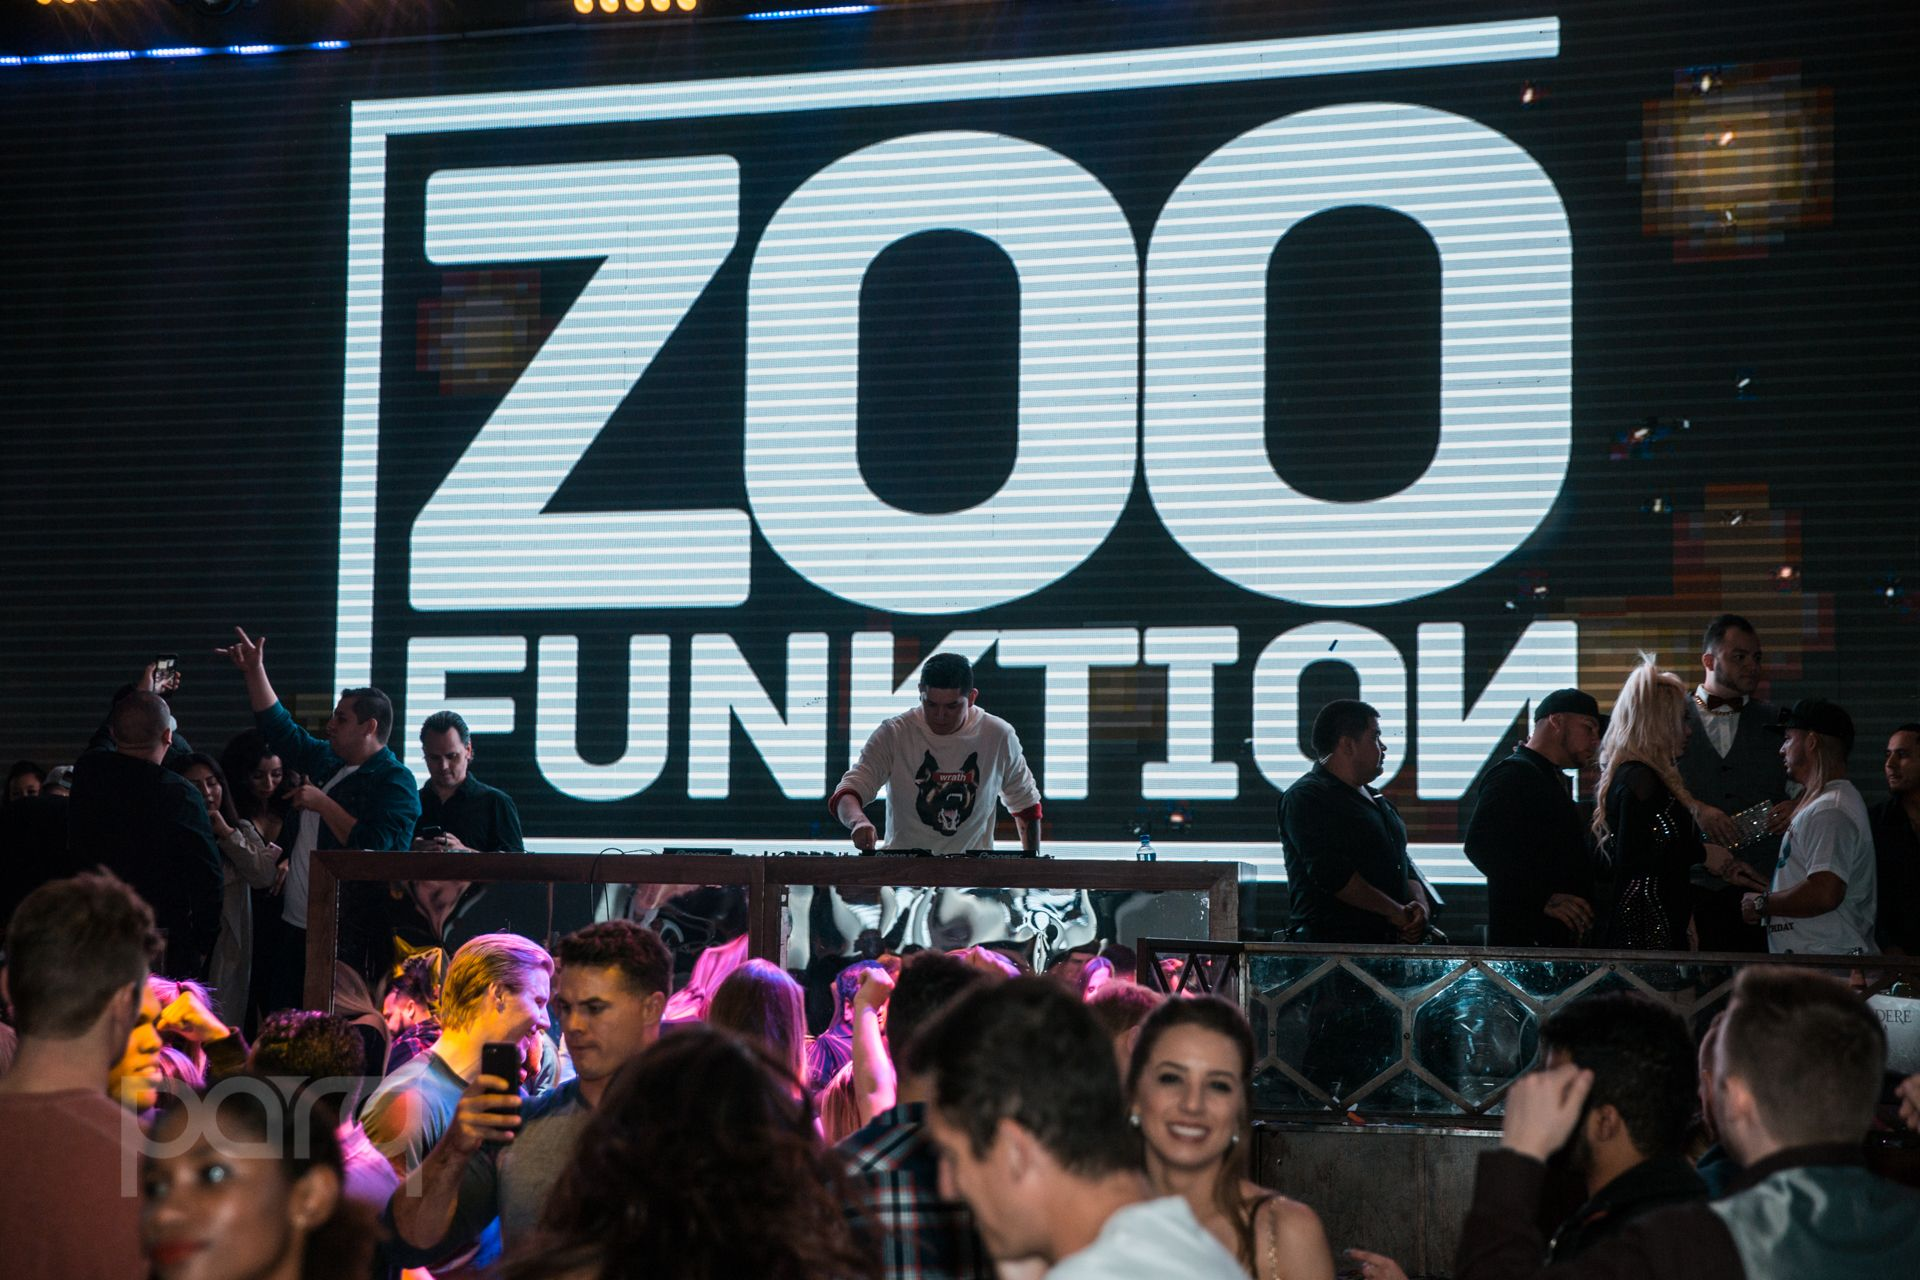 12.16.17 Parq - Zoo Funktion-48.jpg